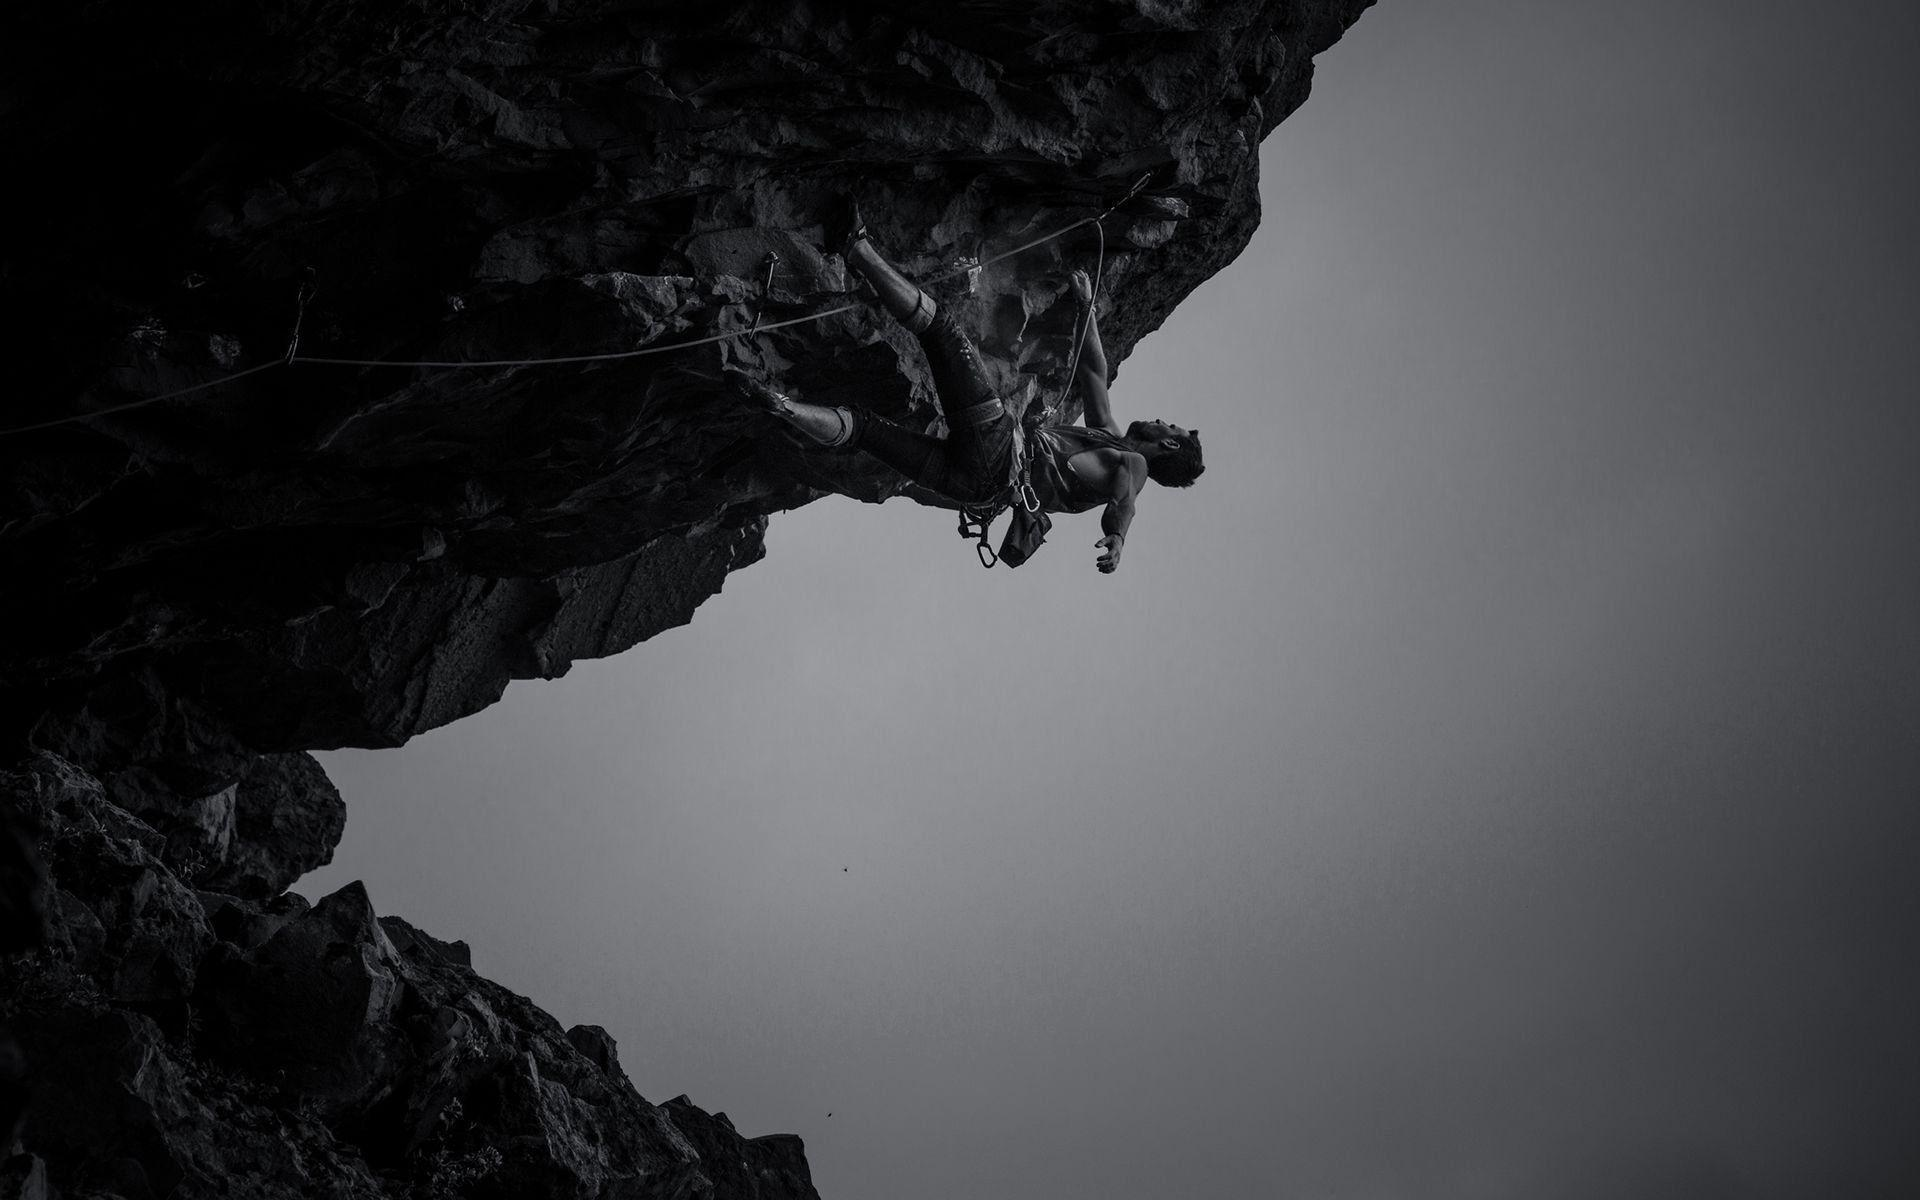 Monochrome Rock Climbing Wallpapers 56283 1920x1200 px